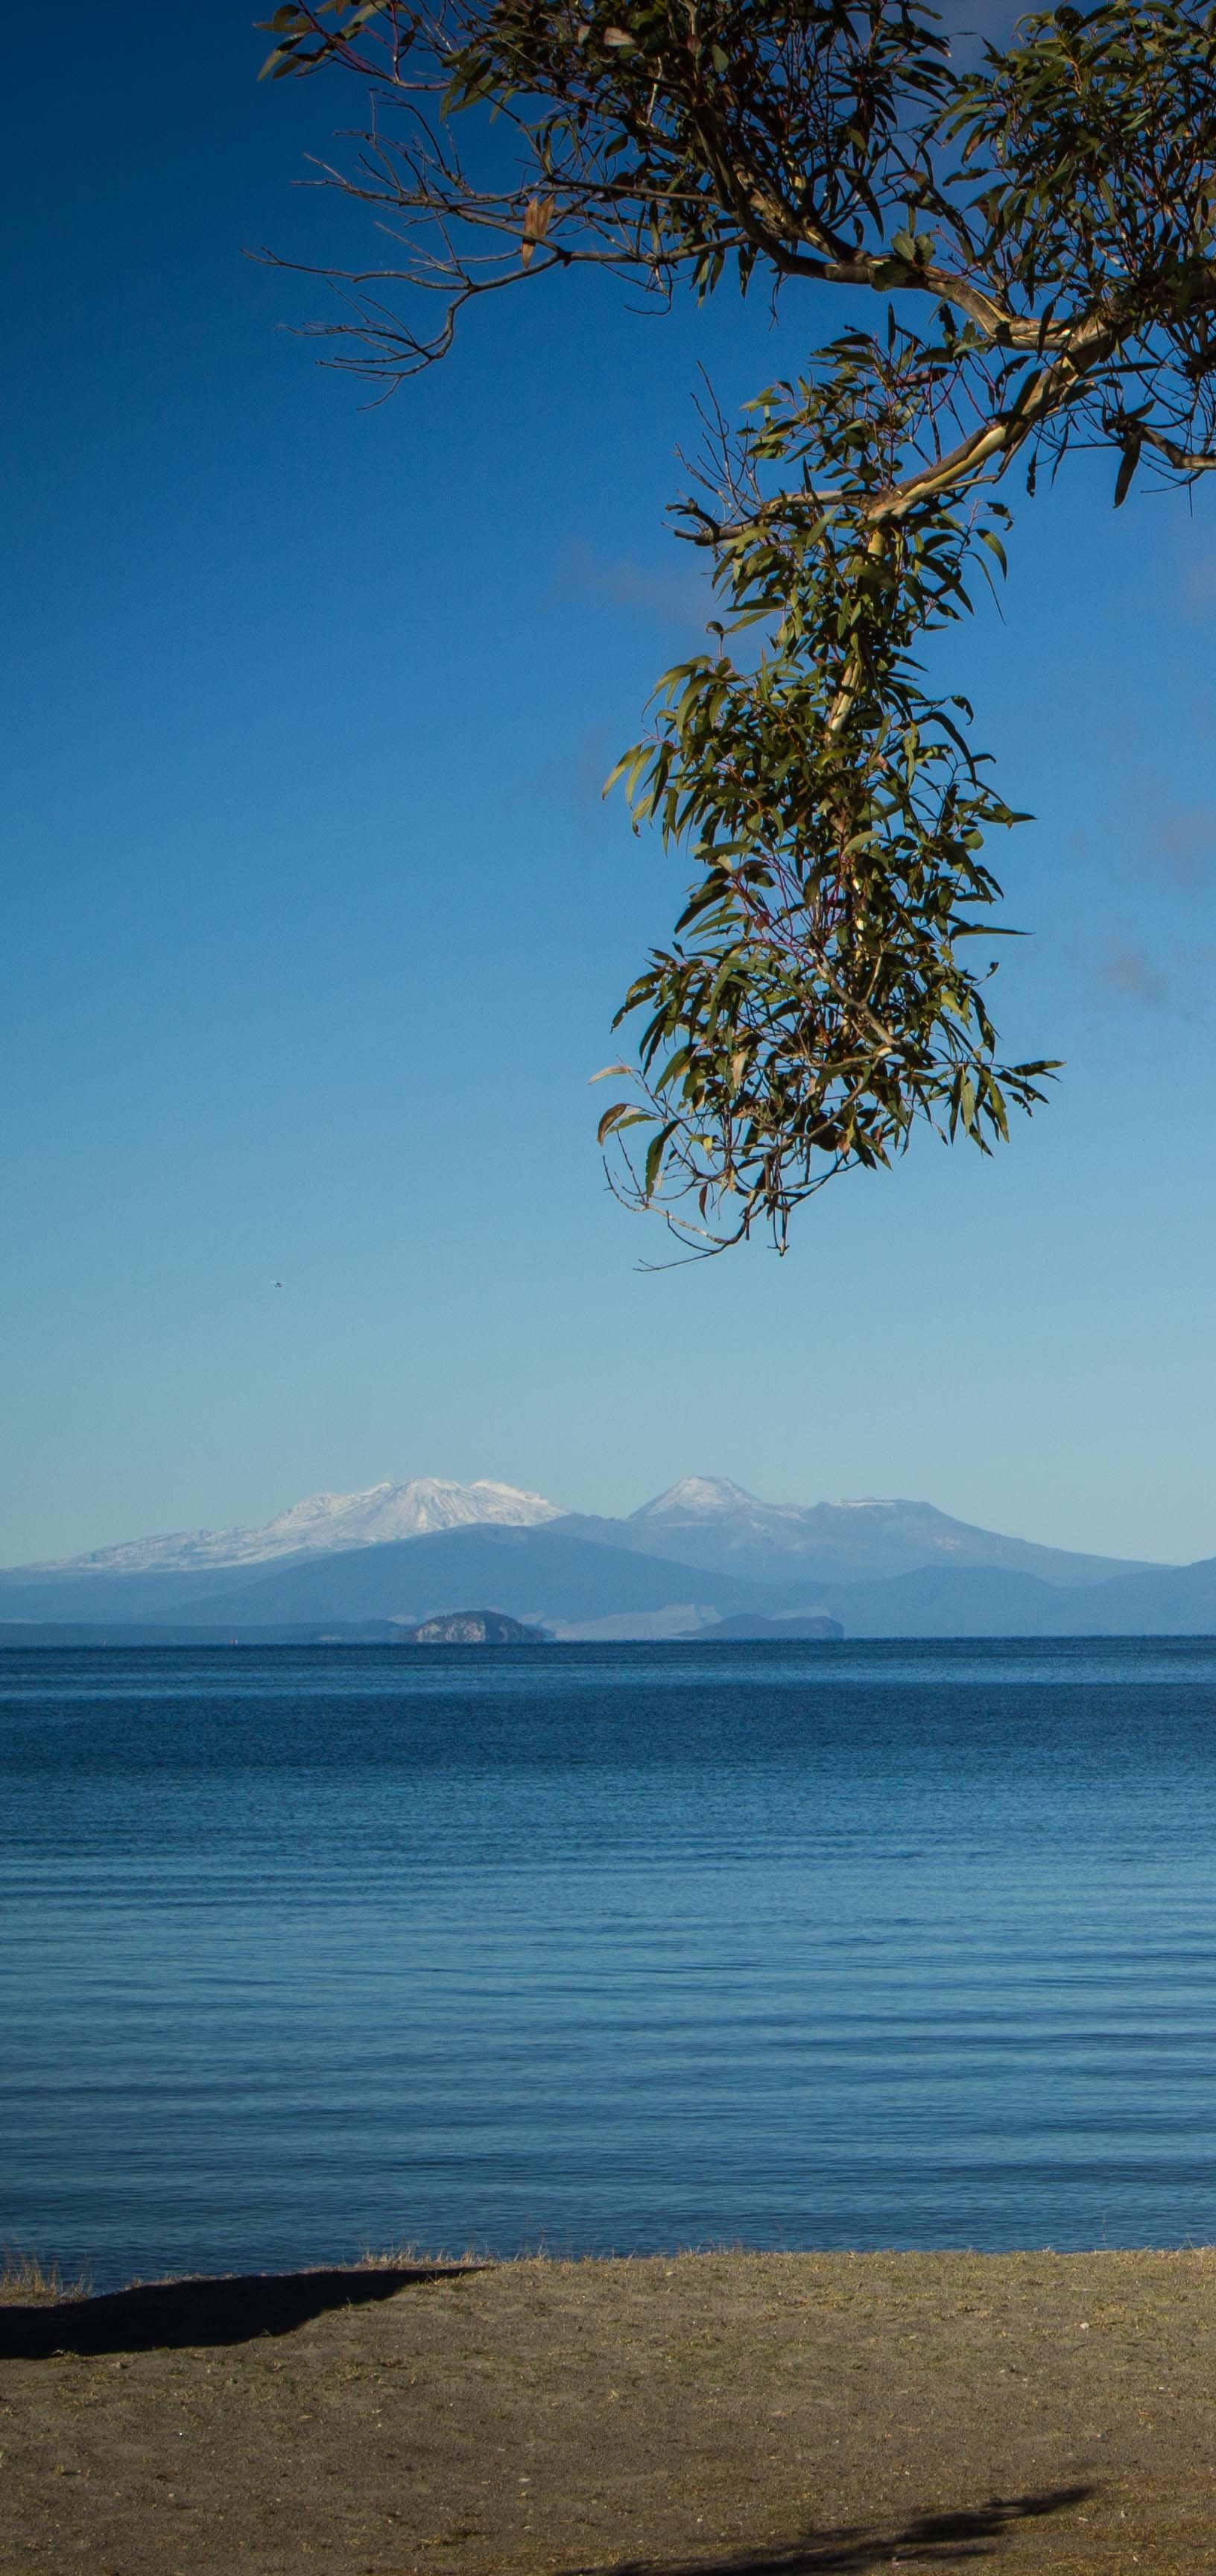 Lake Taupo - looking across to Mt Ruapehu on left and Mt Ngauruhoe in centre ( aka Mt Doom ) and Mt Tongariro on right.